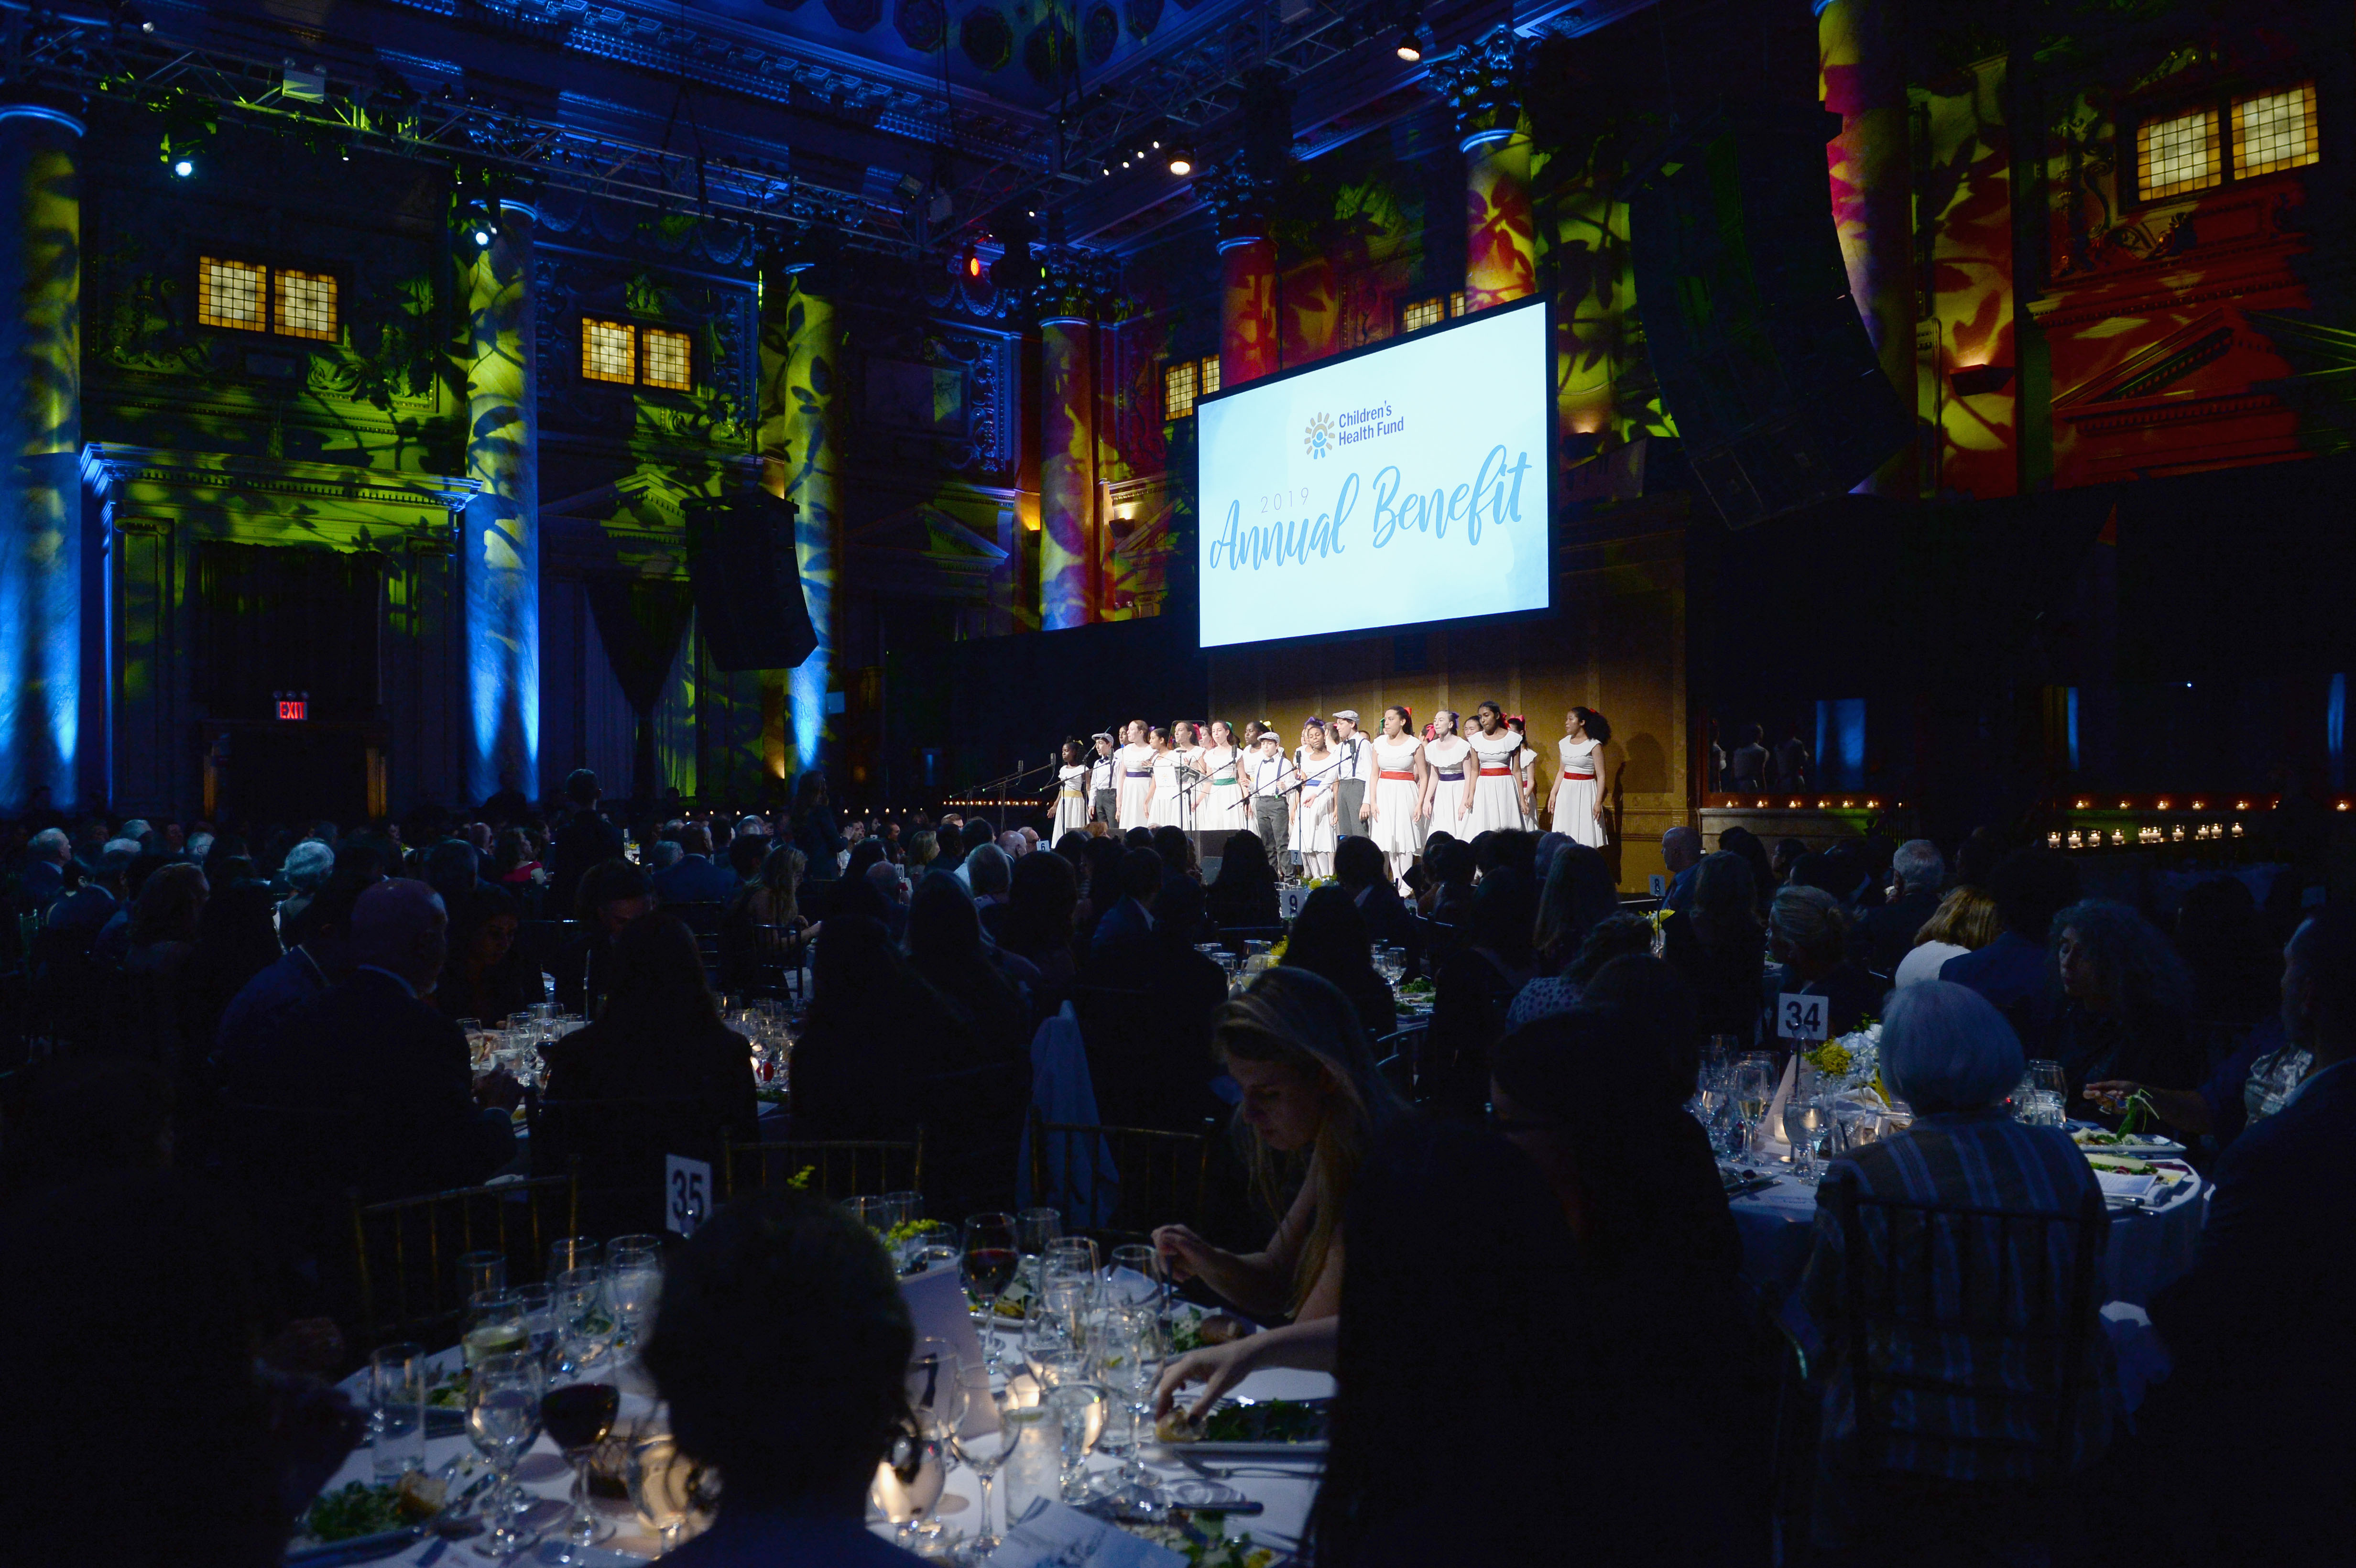 NEW YORK, NEW YORK - JUNE 05: Young People's Chorus of New York City performs during the Children's Health Fund Annual Benefit 2019 on June 05, 2019 in New York City. (Photo by Noam Galai/Getty Images for Children's Health Fund)